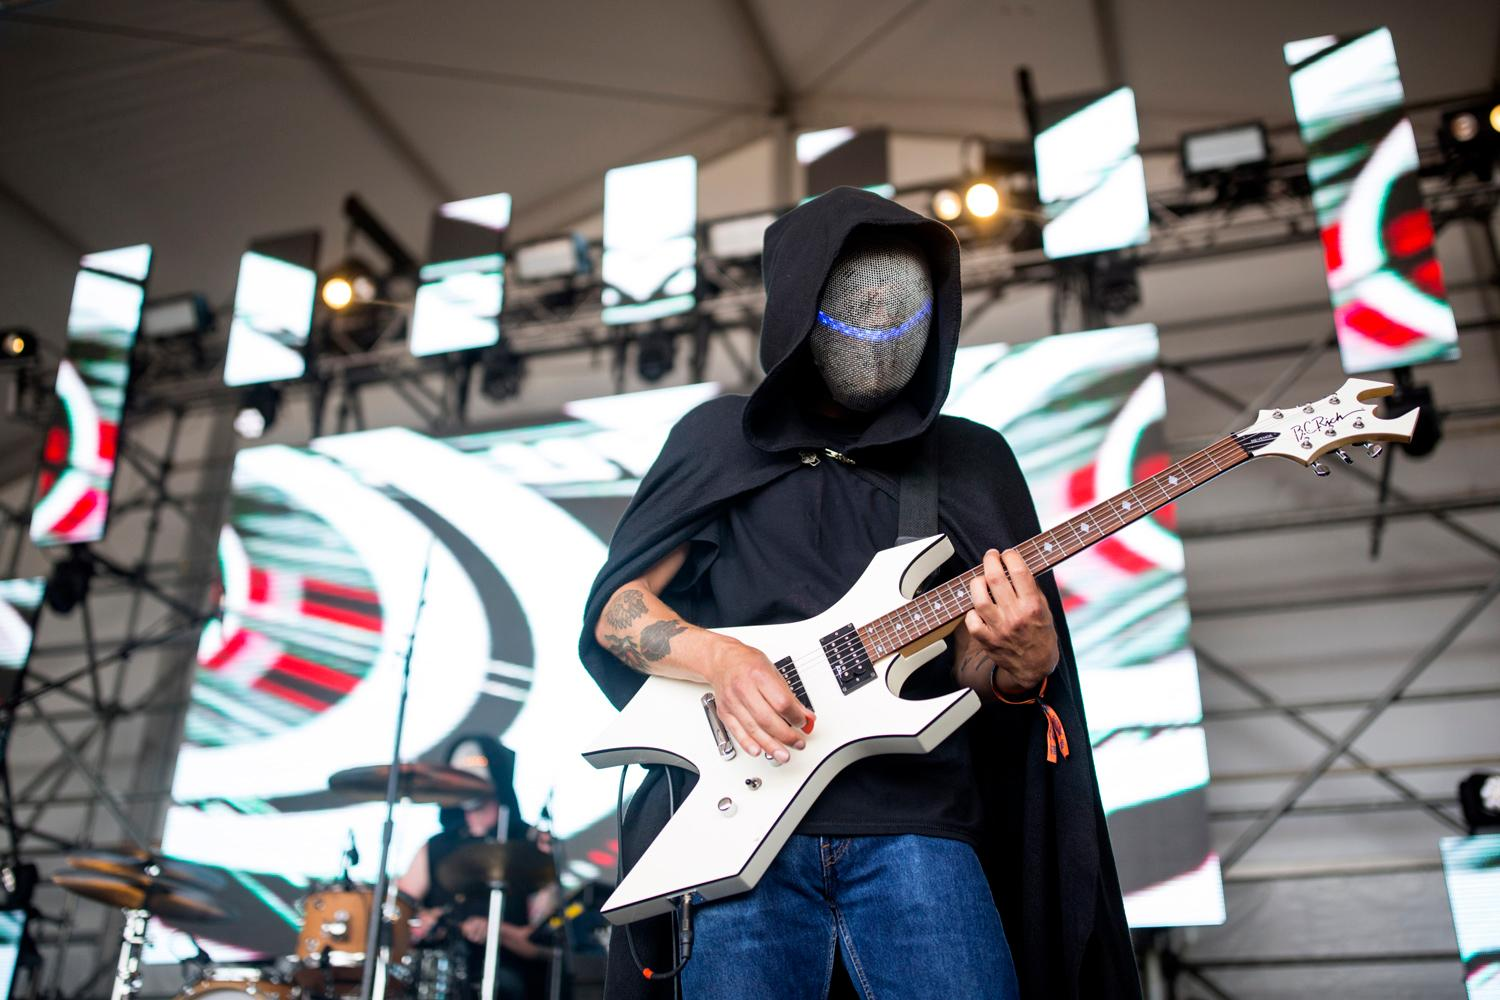 Magic Sword performs at the second day of the annual Sasquatch! Music Festival. The three-day festival runs throughout the Memorial Day Weekend, from May 25-27, 2018. (Sy Bean / Seattle Refined)